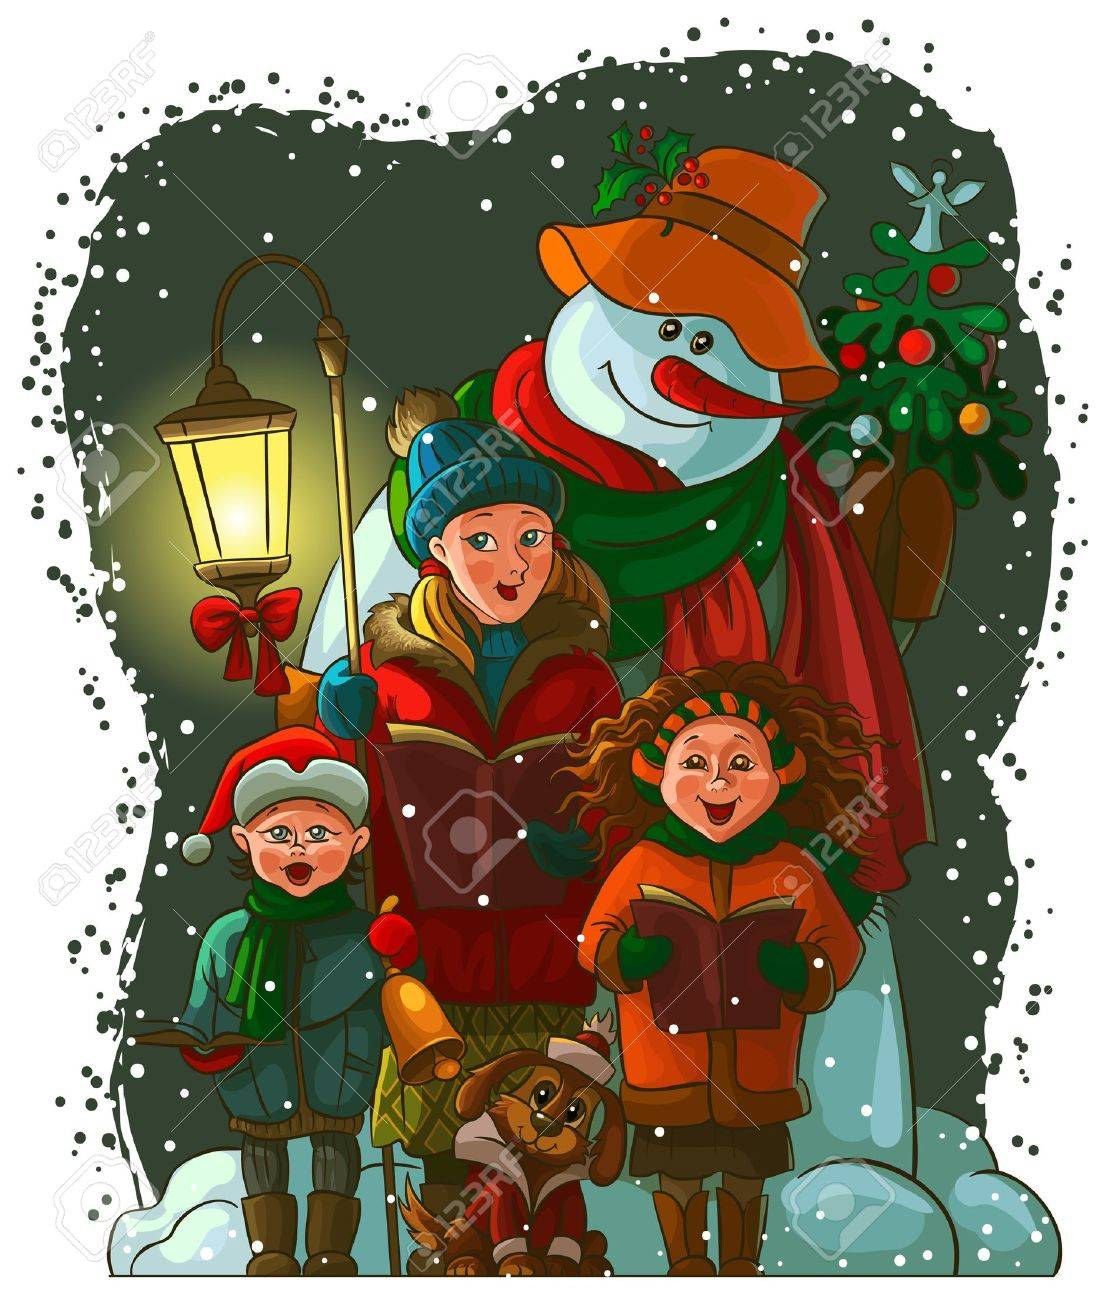 Christmas Carolers. The Vector Art Image Is Very Well-organized ...